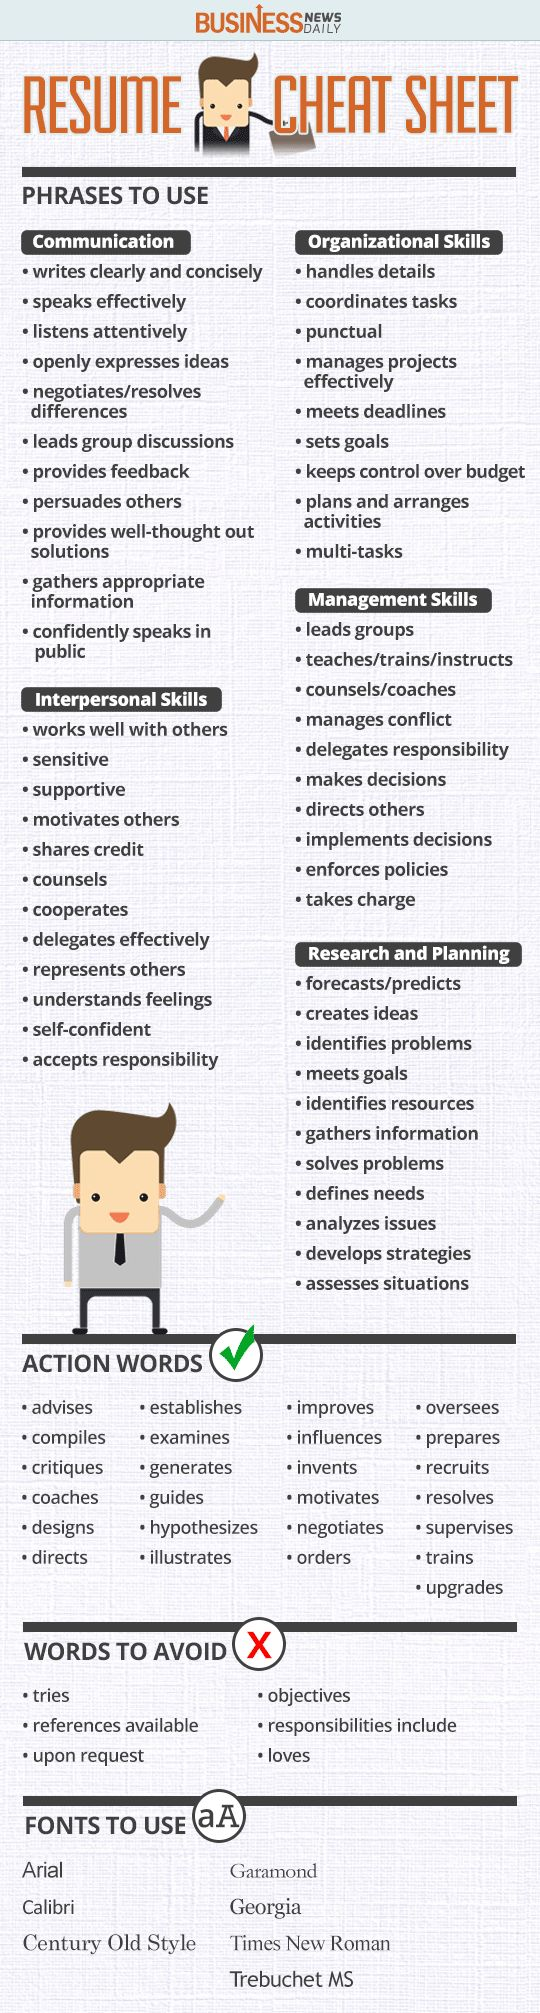 Picnictoimpeachus  Personable  Ideas About Resume On Pinterest  Cv Format Resume Cv And  With Gorgeous Resume Cheat Sheet Infographic Andrews Almost Done With A Complete Unit On Employment Which With Delightful Cna Resume With No Experience Also Where To Put Gpa On Resume In Addition Simple Job Resume Template And Bank Manager Resume As Well As Resume For Hairstylist Additionally Office Assistant Resume Sample From Pinterestcom With Picnictoimpeachus  Gorgeous  Ideas About Resume On Pinterest  Cv Format Resume Cv And  With Delightful Resume Cheat Sheet Infographic Andrews Almost Done With A Complete Unit On Employment Which And Personable Cna Resume With No Experience Also Where To Put Gpa On Resume In Addition Simple Job Resume Template From Pinterestcom